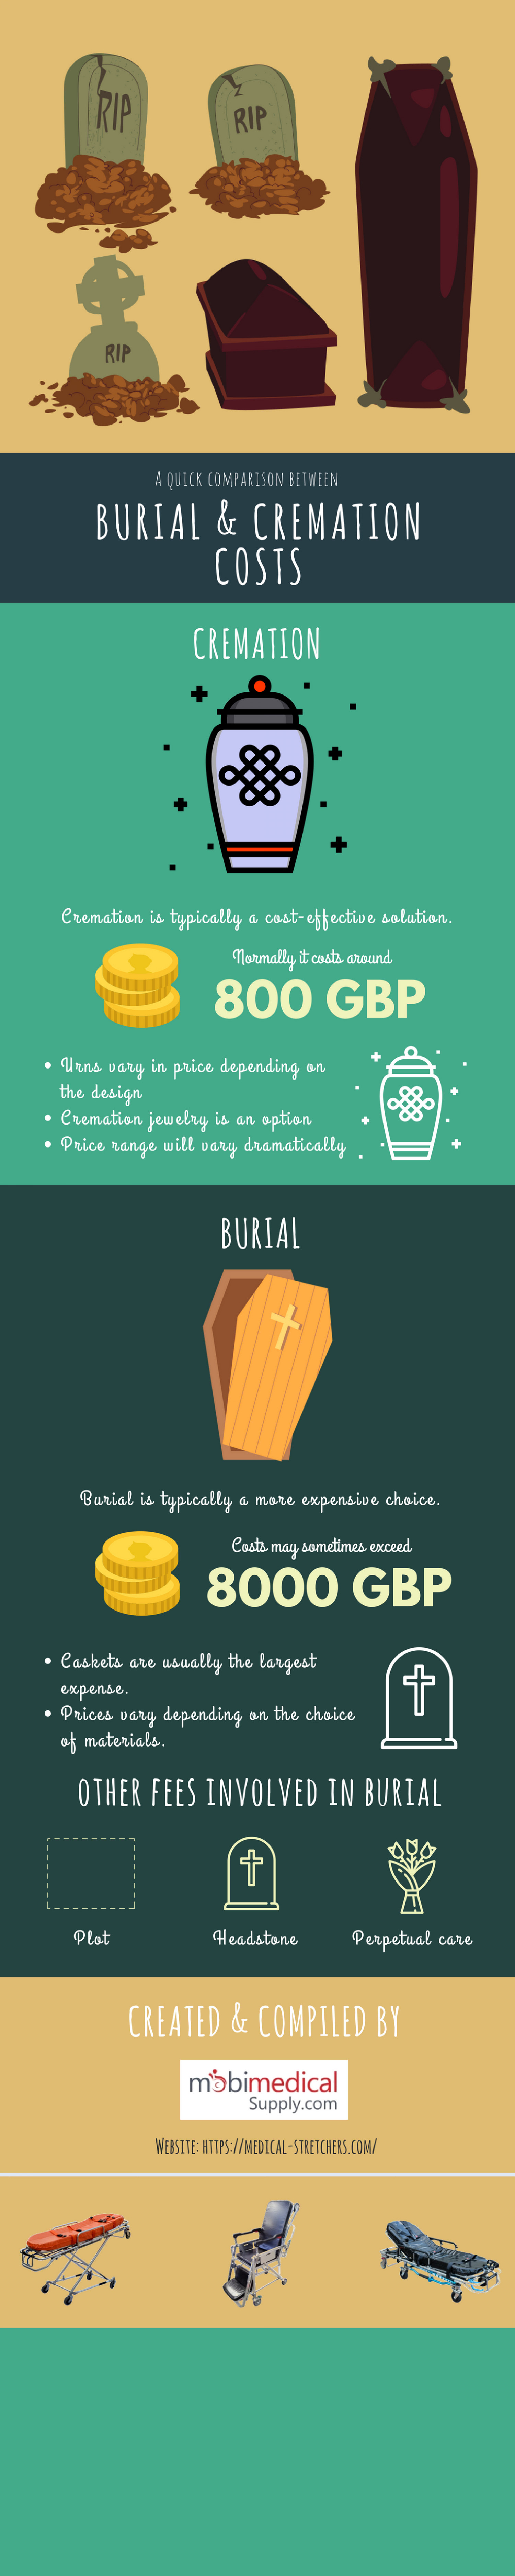 A Quick Comparison Between Burial & Cremation Costs Infographic Infographic